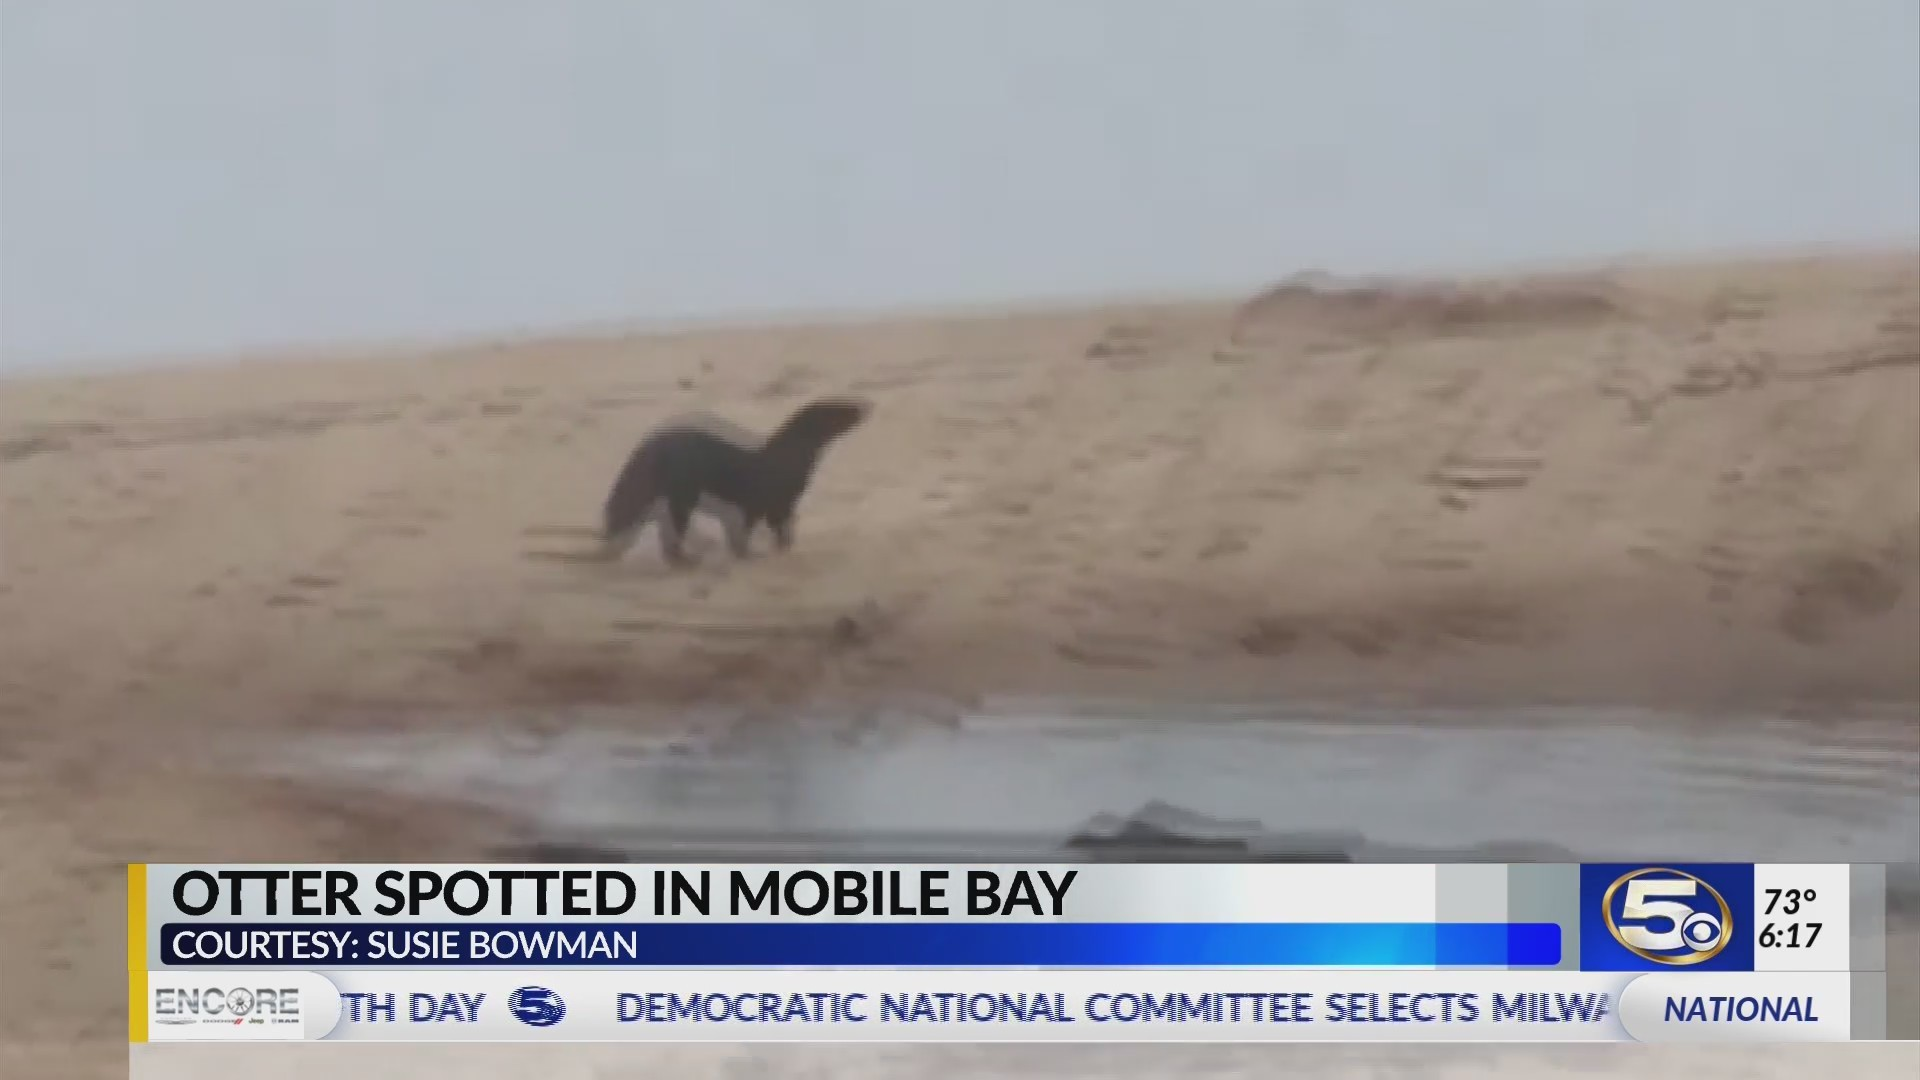 VIDEO: Caught on Camera - Otter Sighting in Mobile Bay